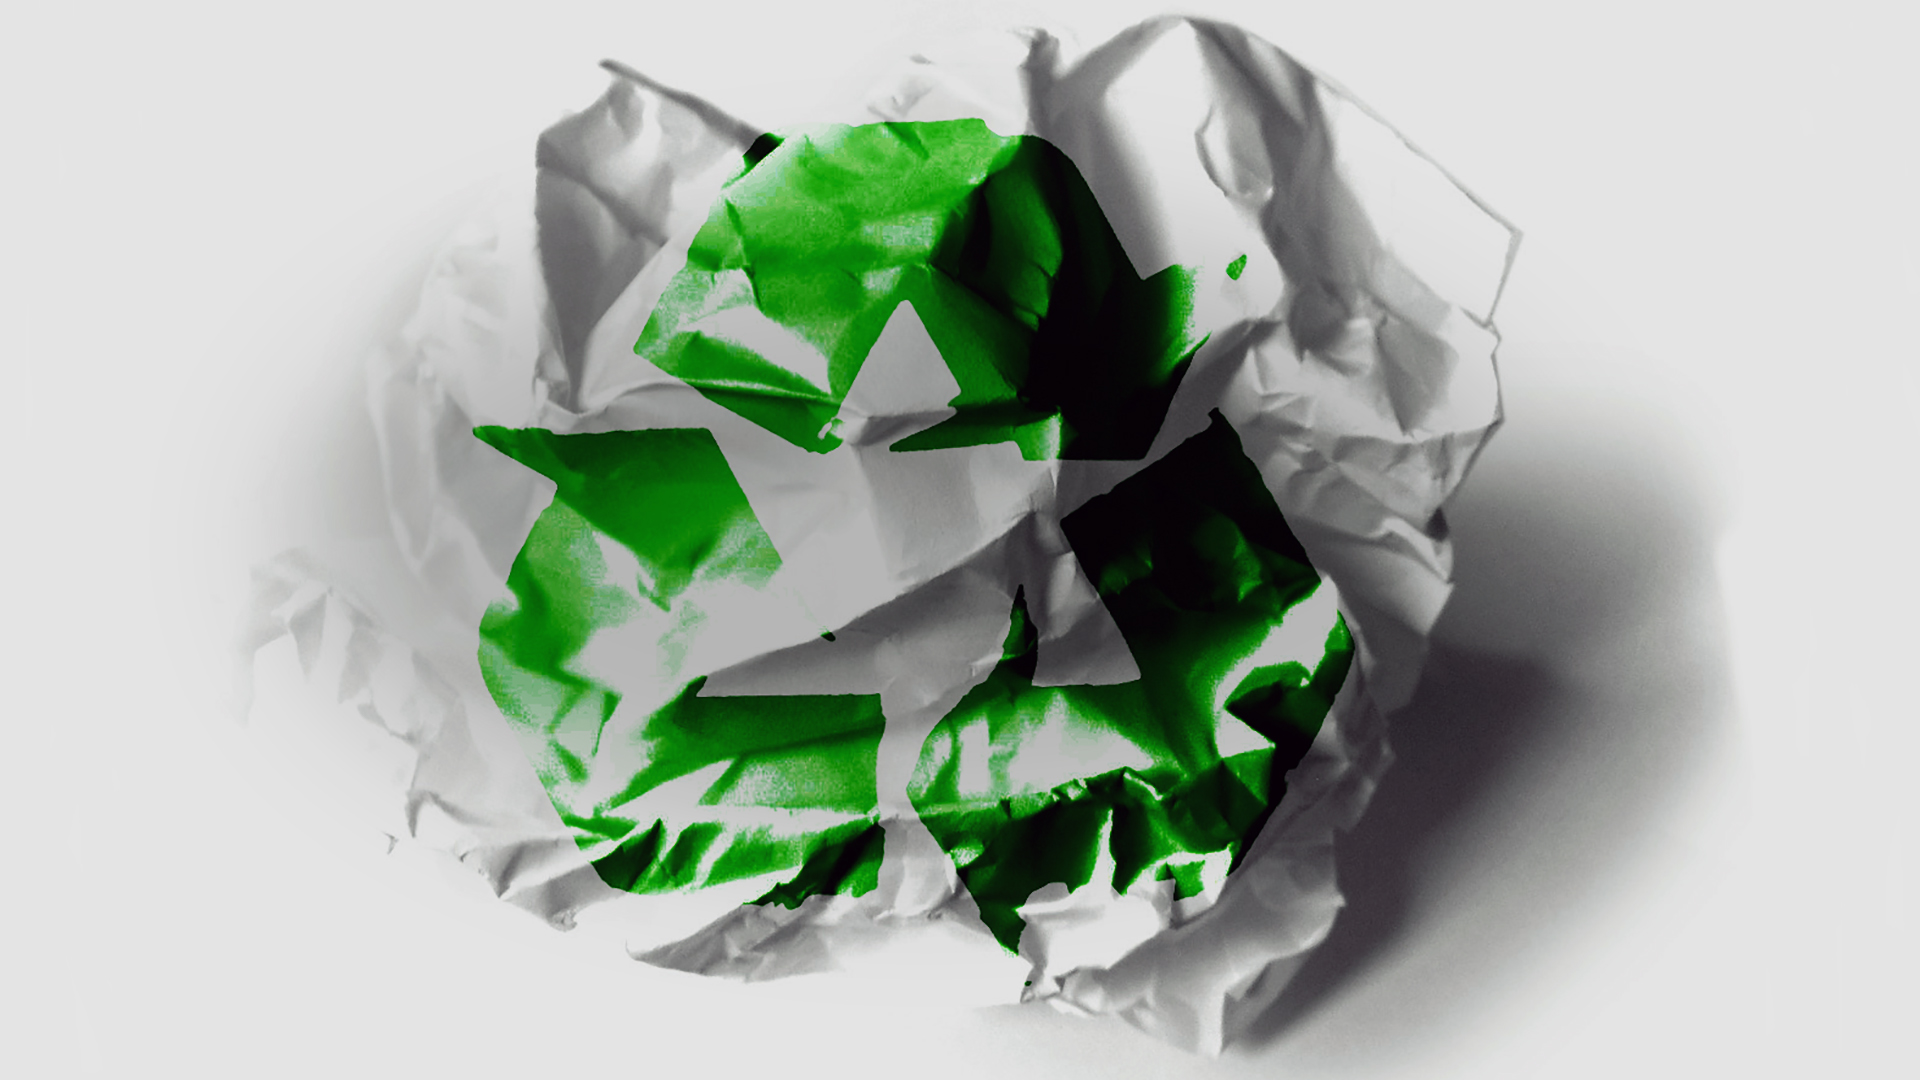 Green Chair Recycling Recycling Made Easy